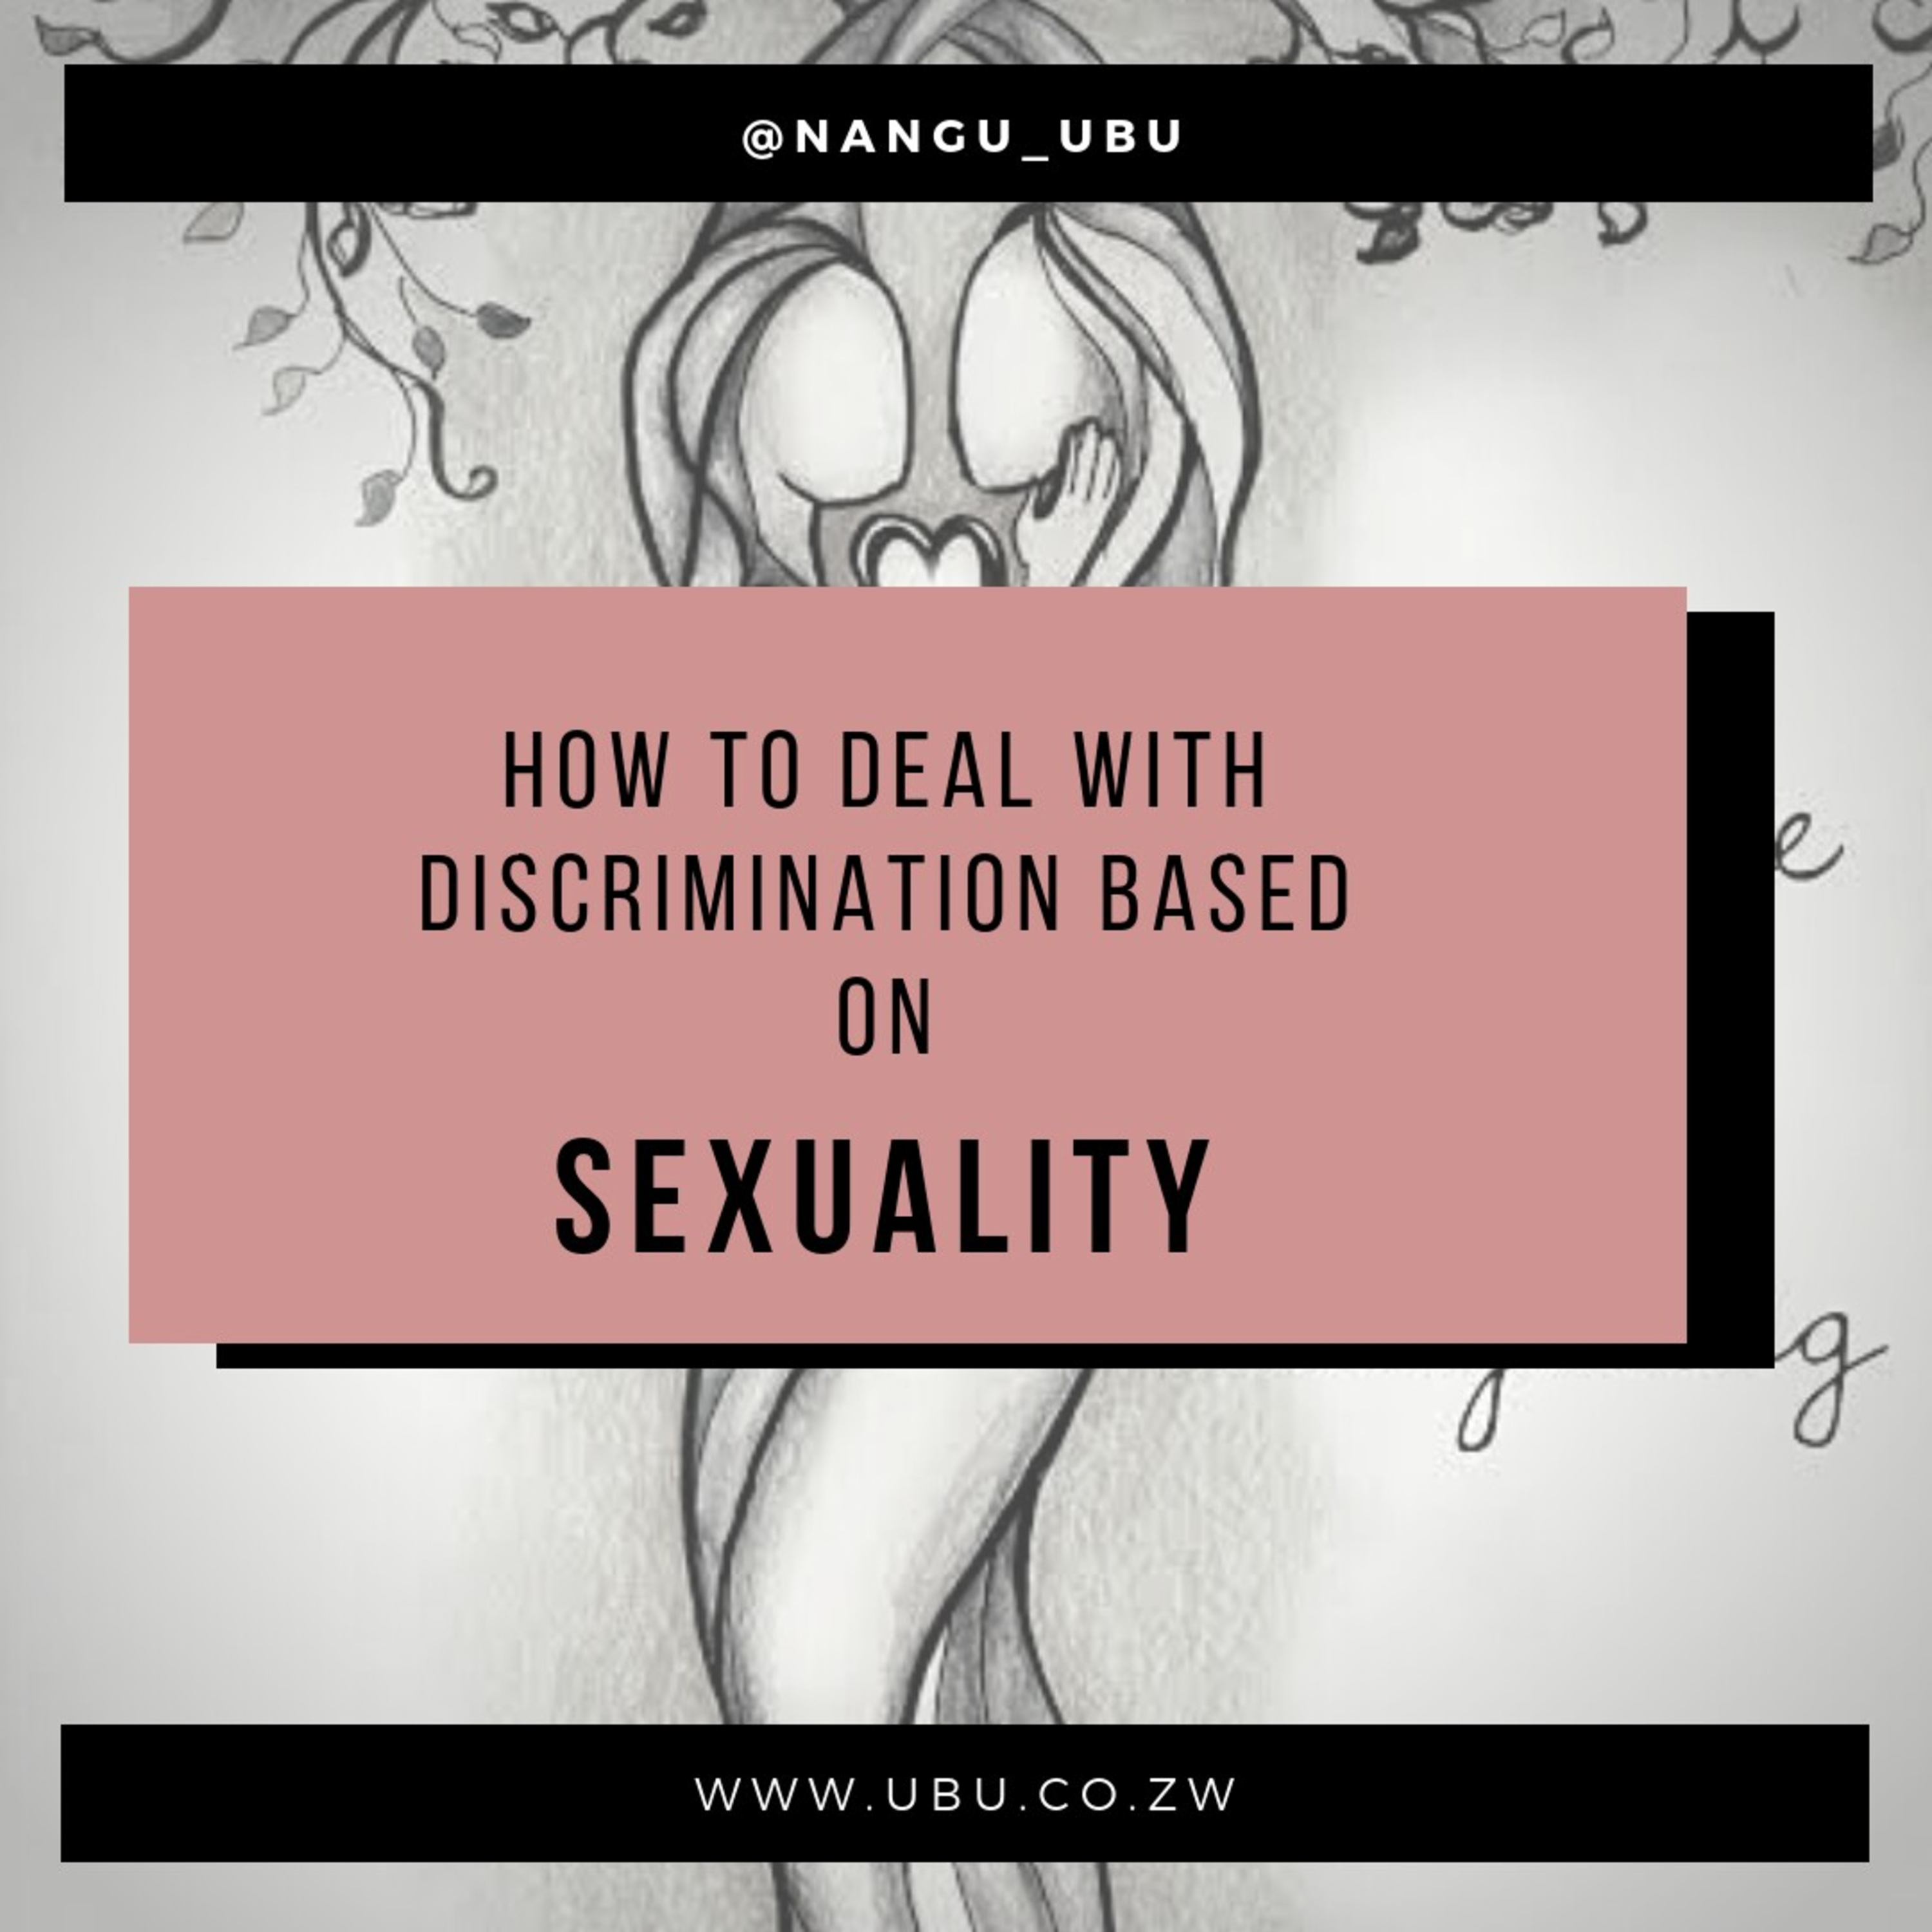 HOW TO DEAL WITH DISCRIMINATION BASED ON SEXUALITY